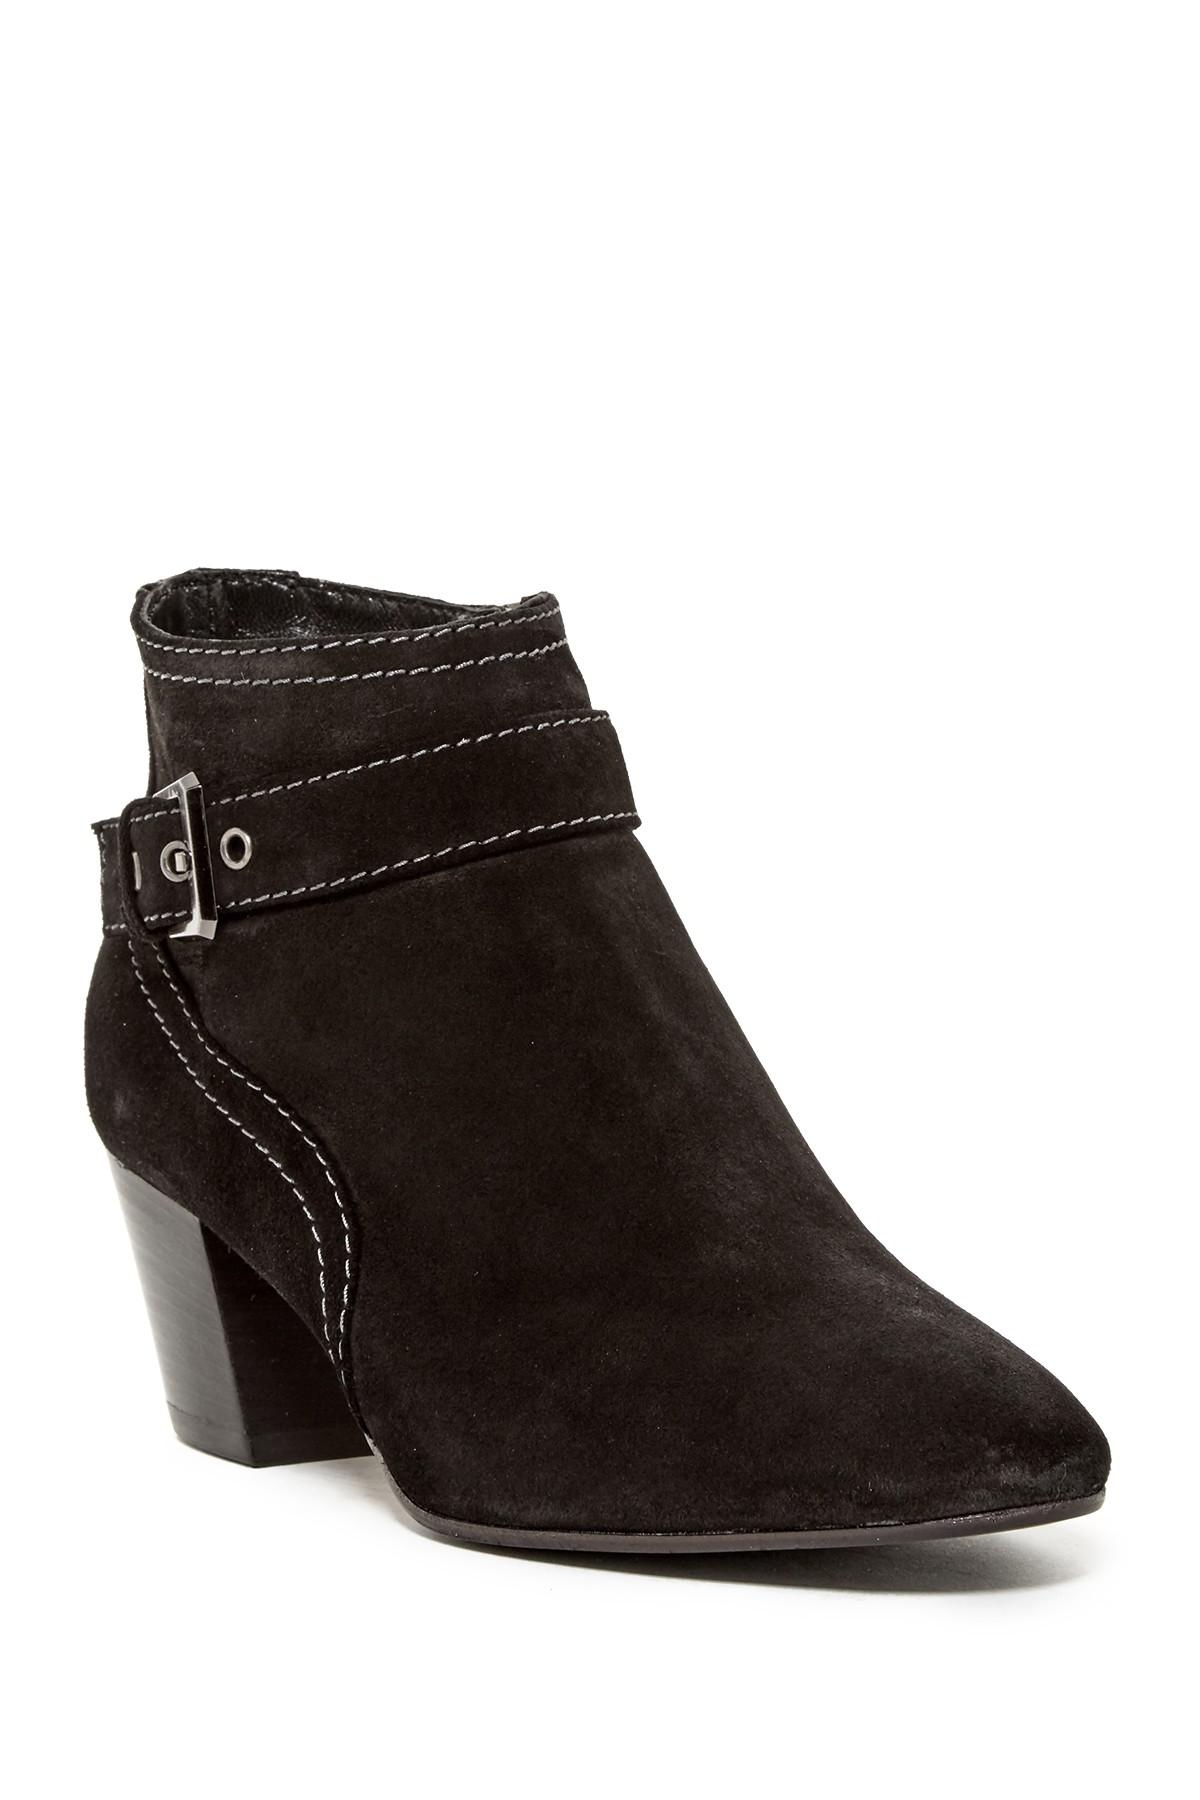 big sale Aquatalia Suede Ankle Boots clearance amazon low shipping fee cheap price WIXch